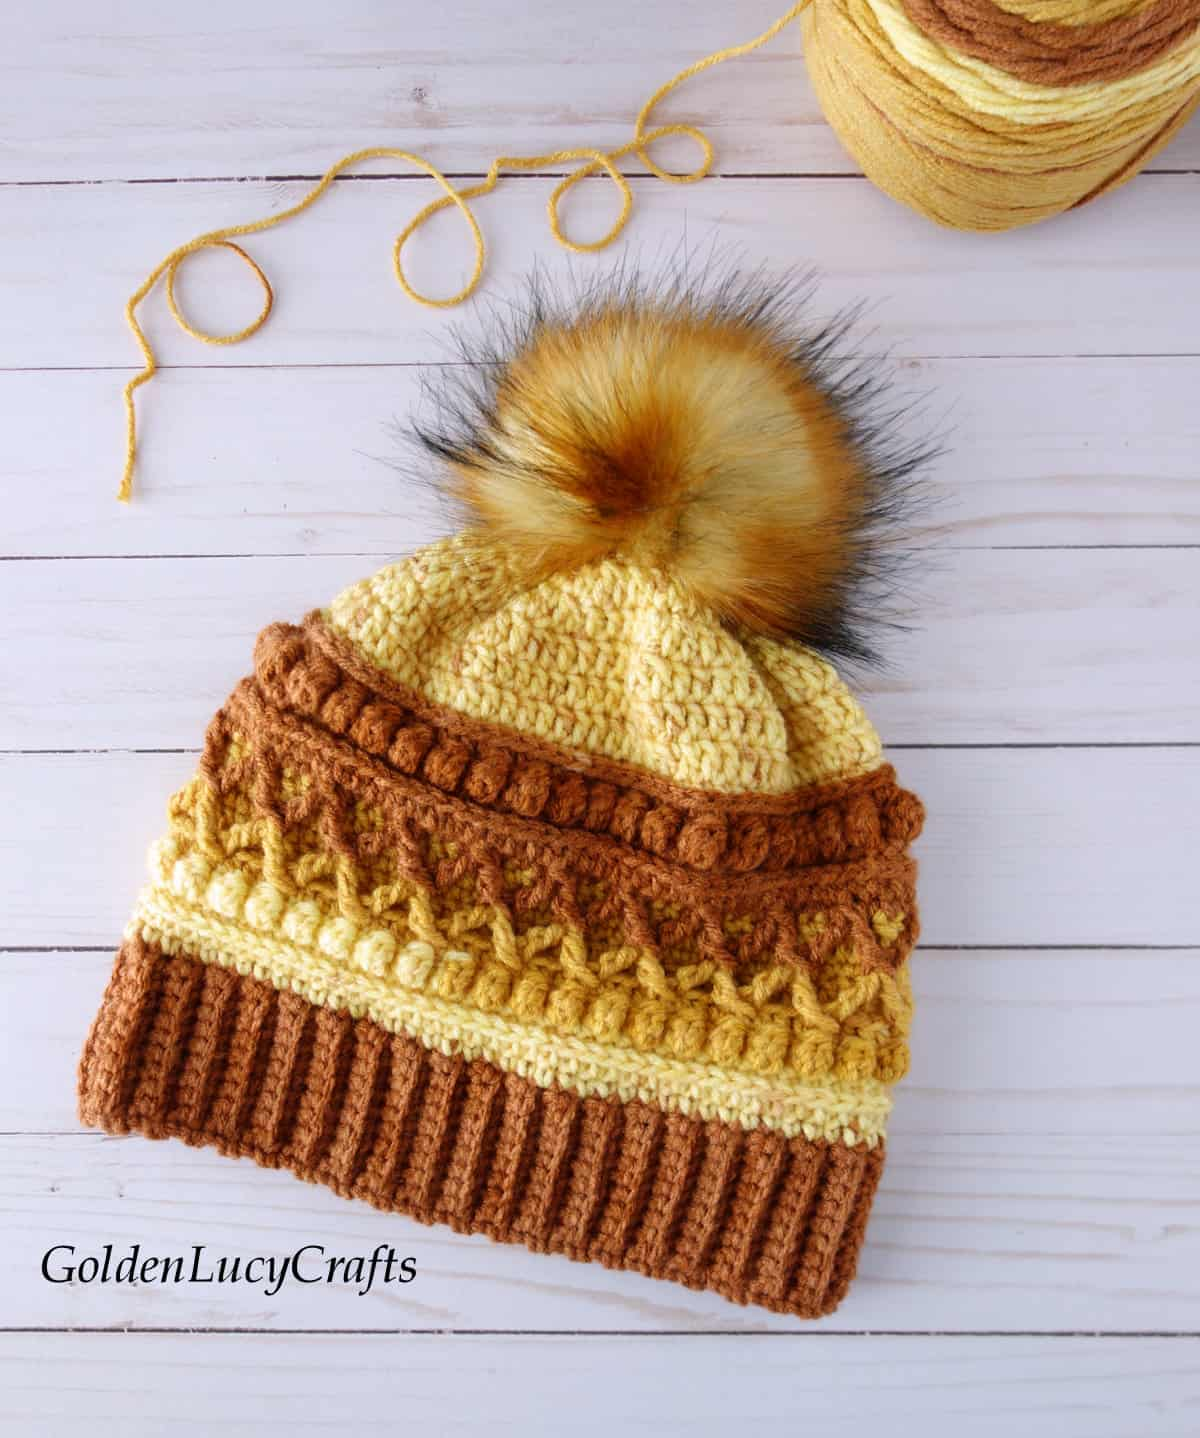 Crocheted hat in brown, orange and yellow colors embellished with faux fur pompom, ball of yarn in the background.